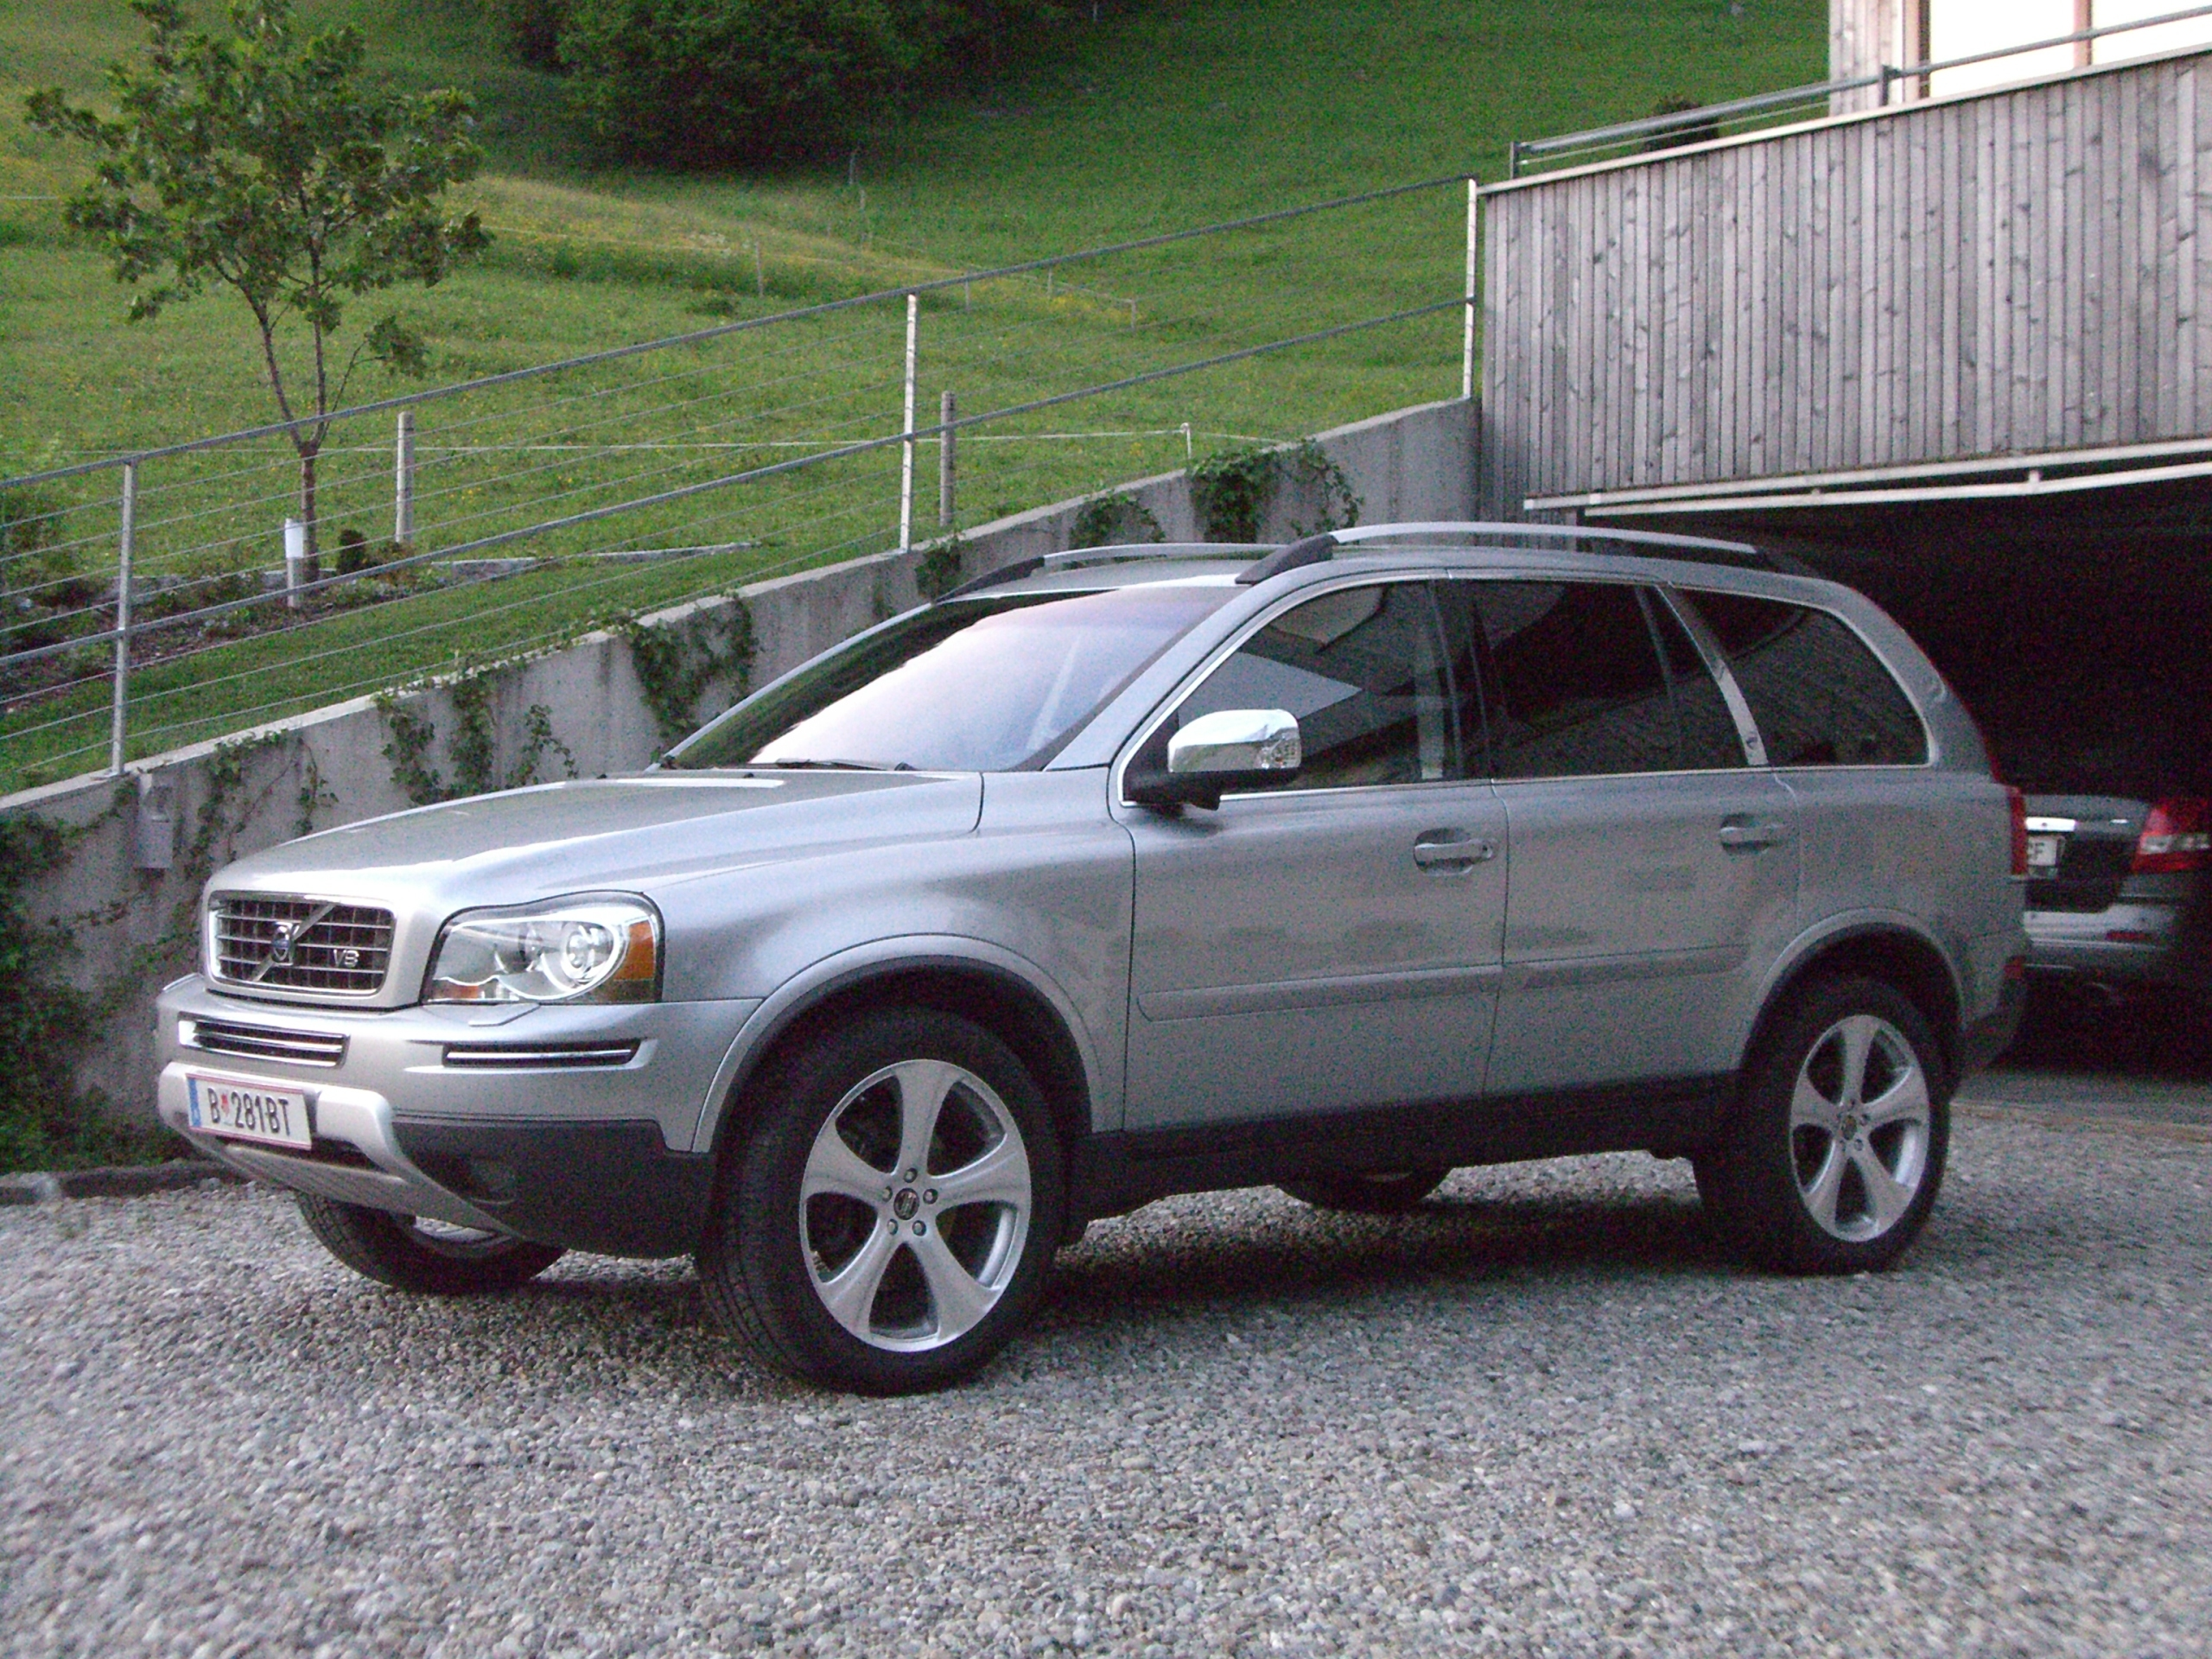 Doc780 2008 Volvo XC90 Specs, Photos, Modification Info at ...